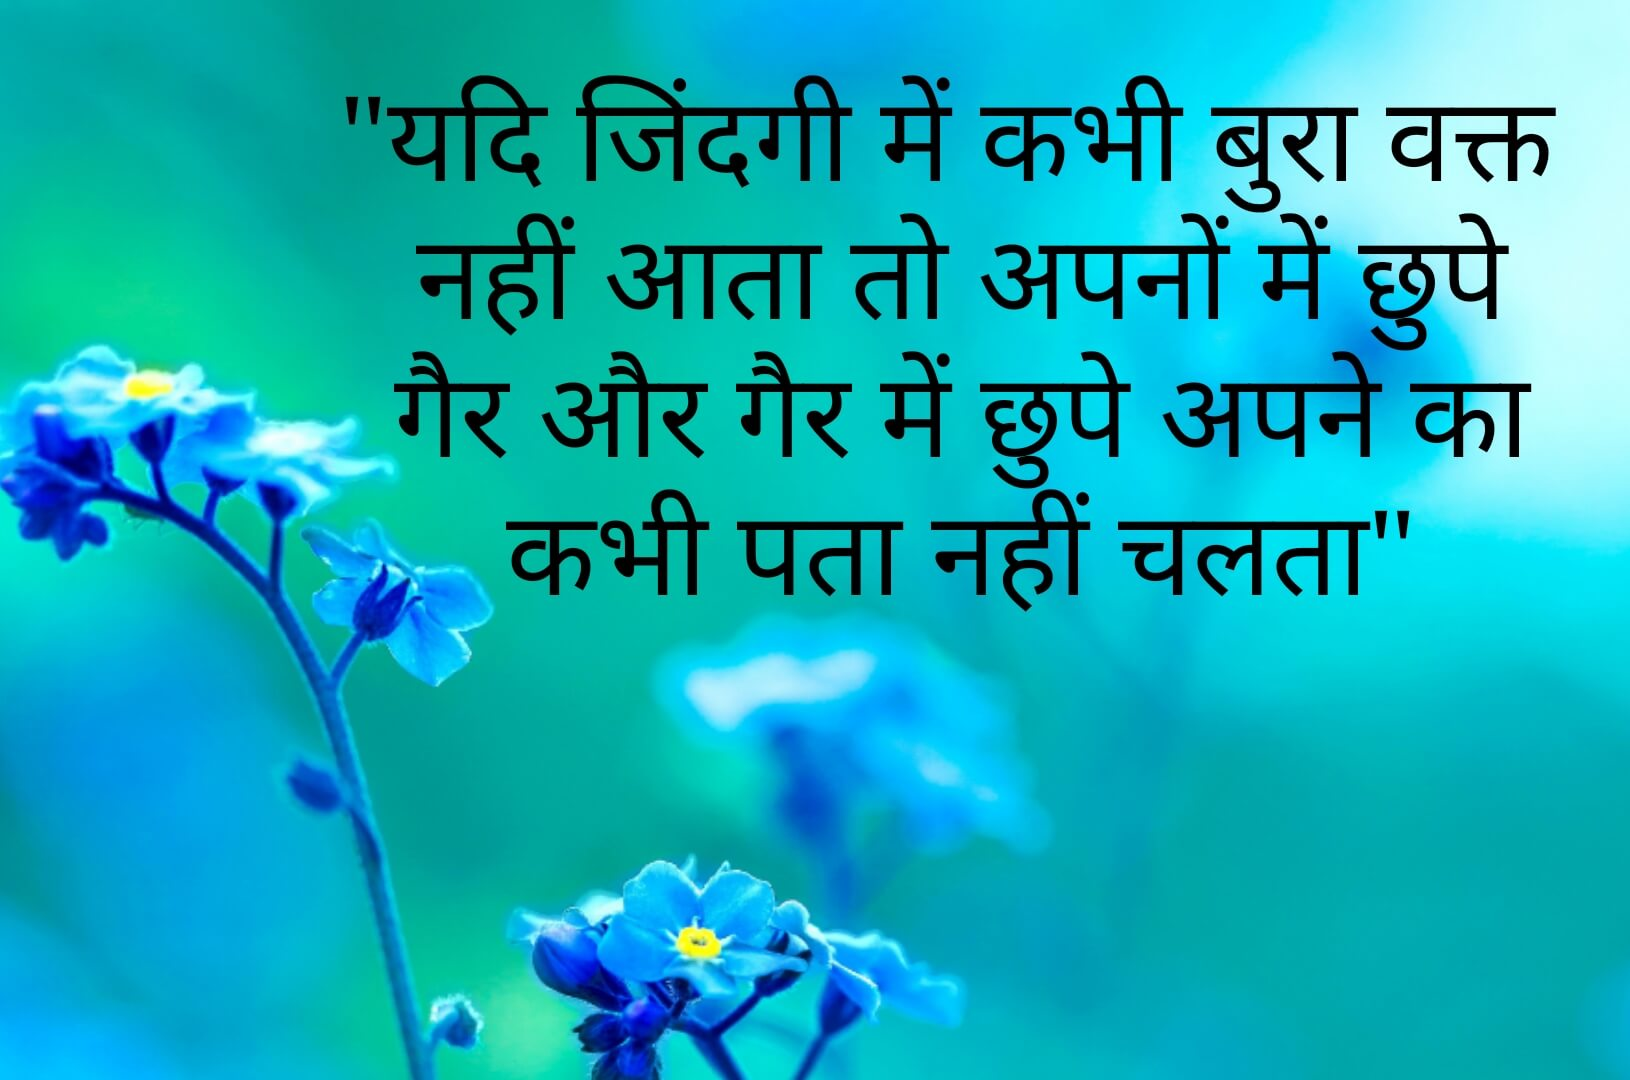 Best Hindi Motivational Inspirational Shayari Hindi